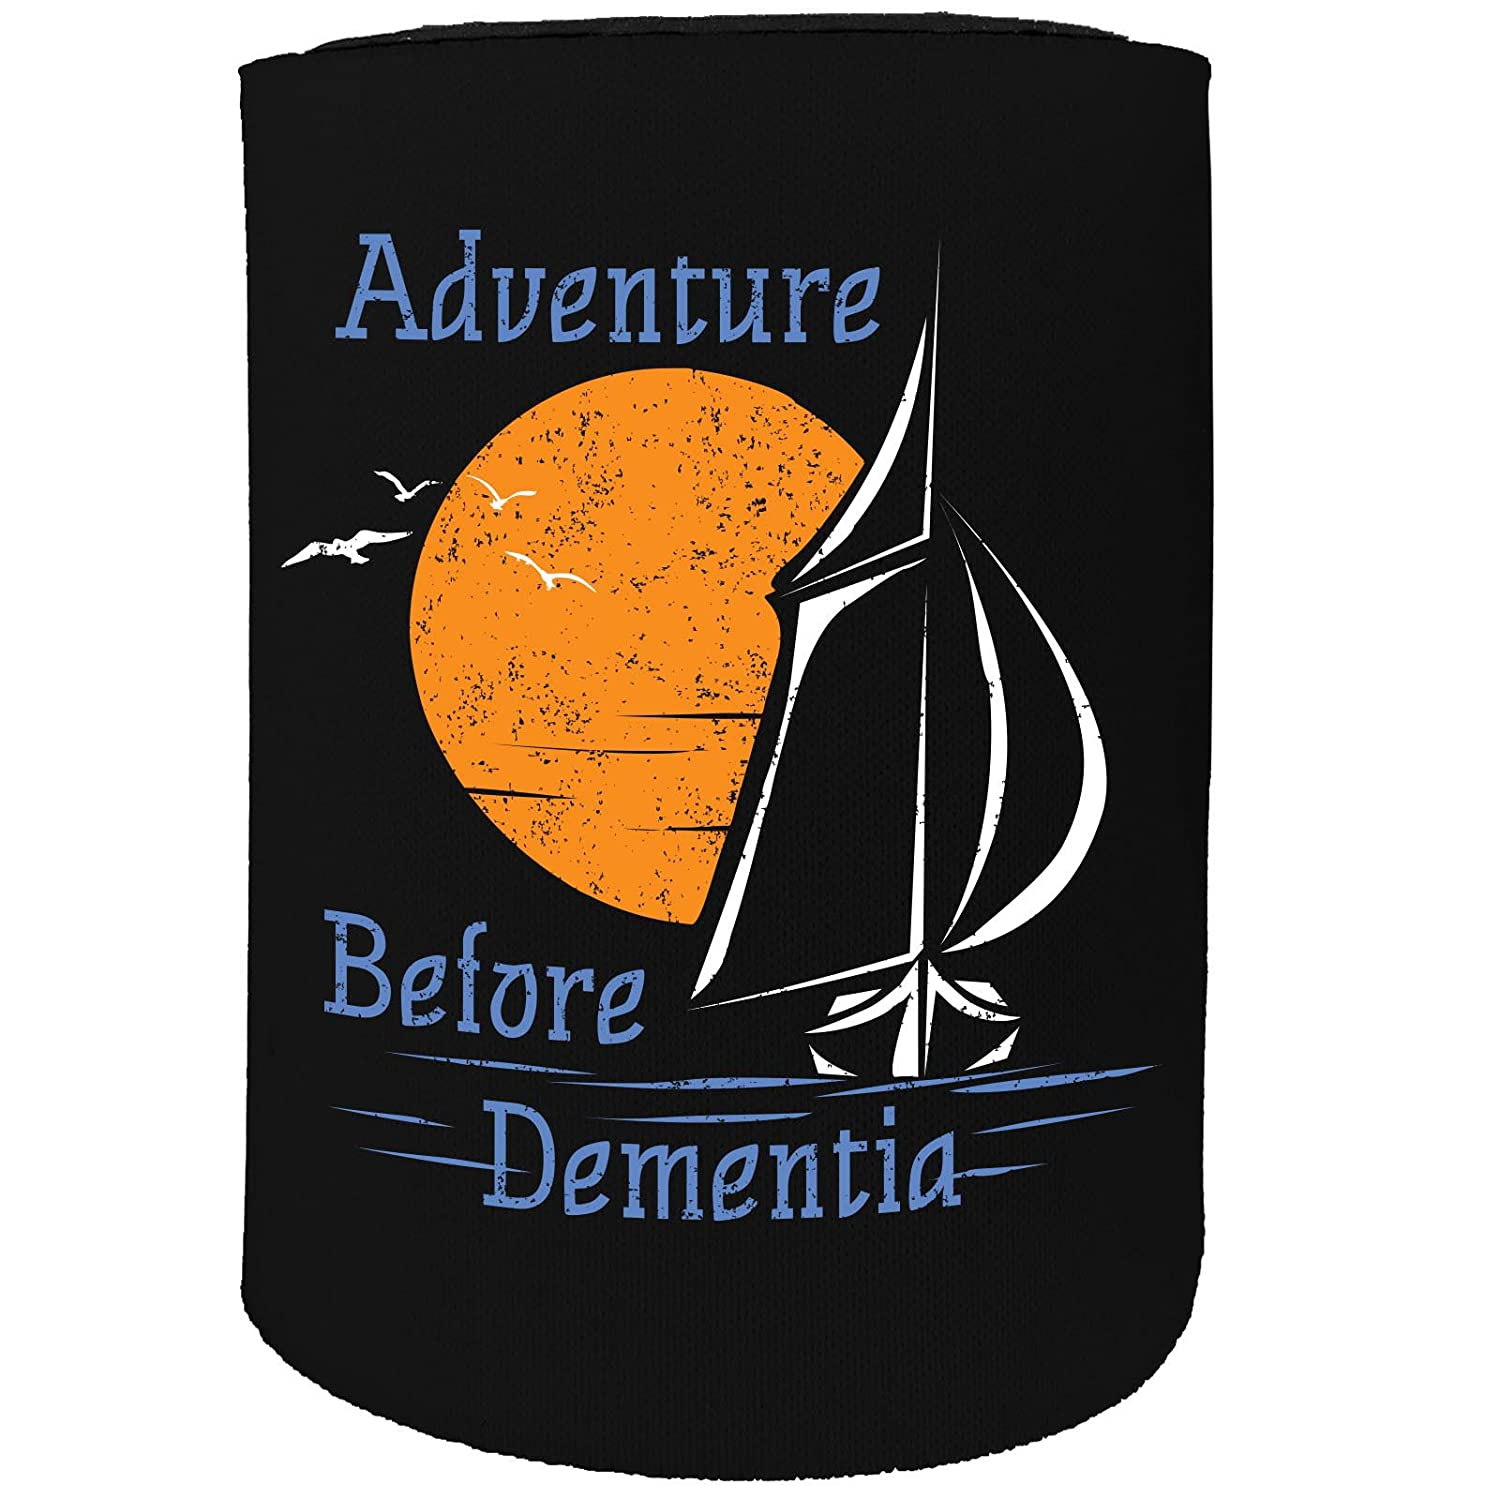 123t Stubby Holder - Sail Adventure Before Dementia Sailing Boat - Funny Novelty Birthday Gift Joke Beer Can Bottle Coolie Koozie Stubbie